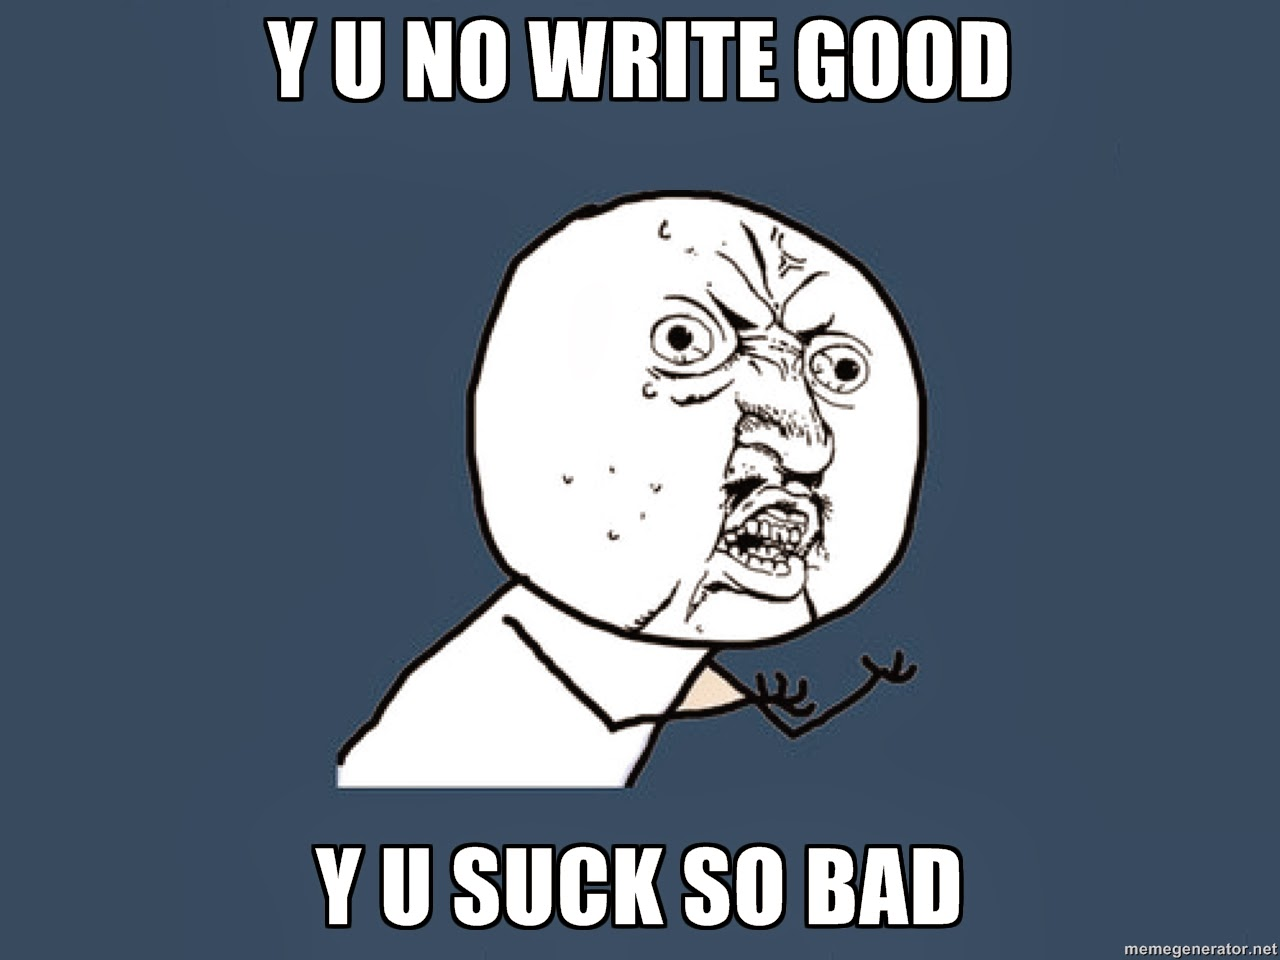 How much time to write a 2000-2500 word essay?